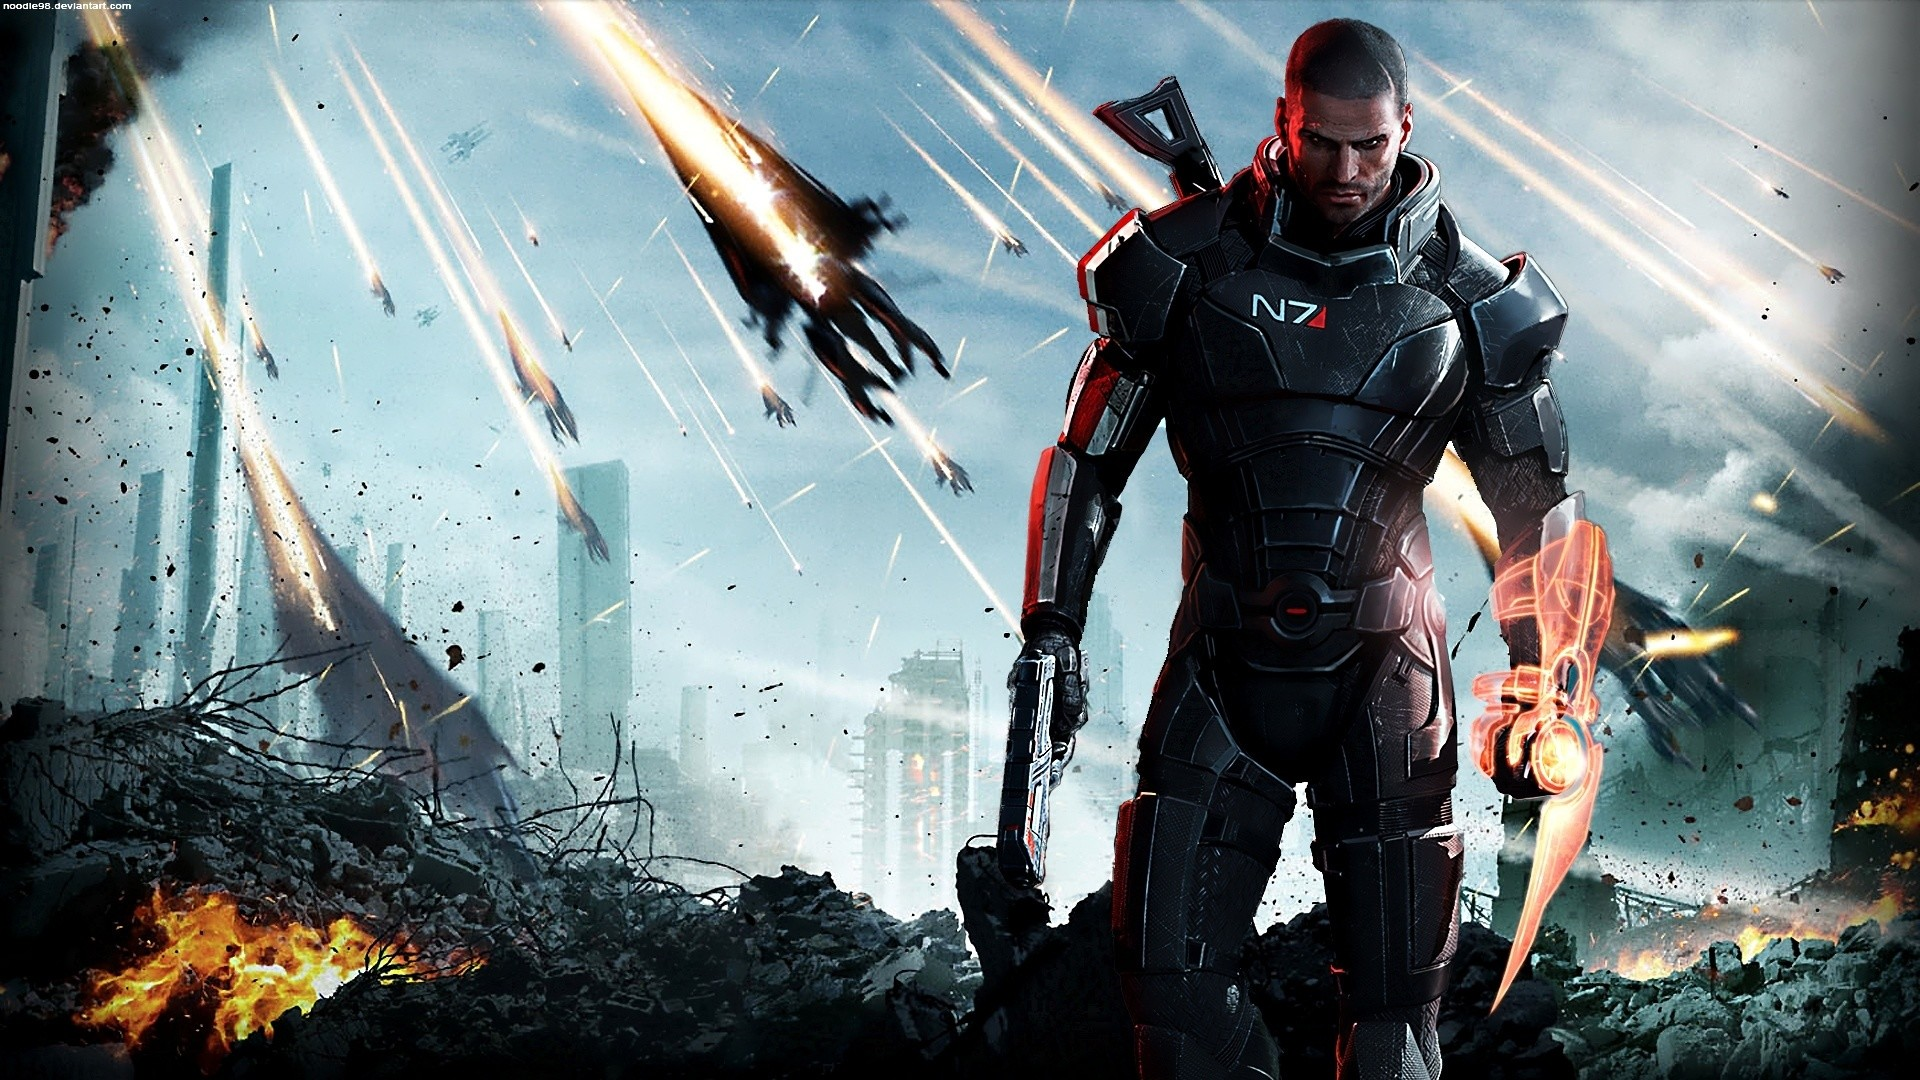 Mass Effect 3 Wallpaper 1080p 83 Images